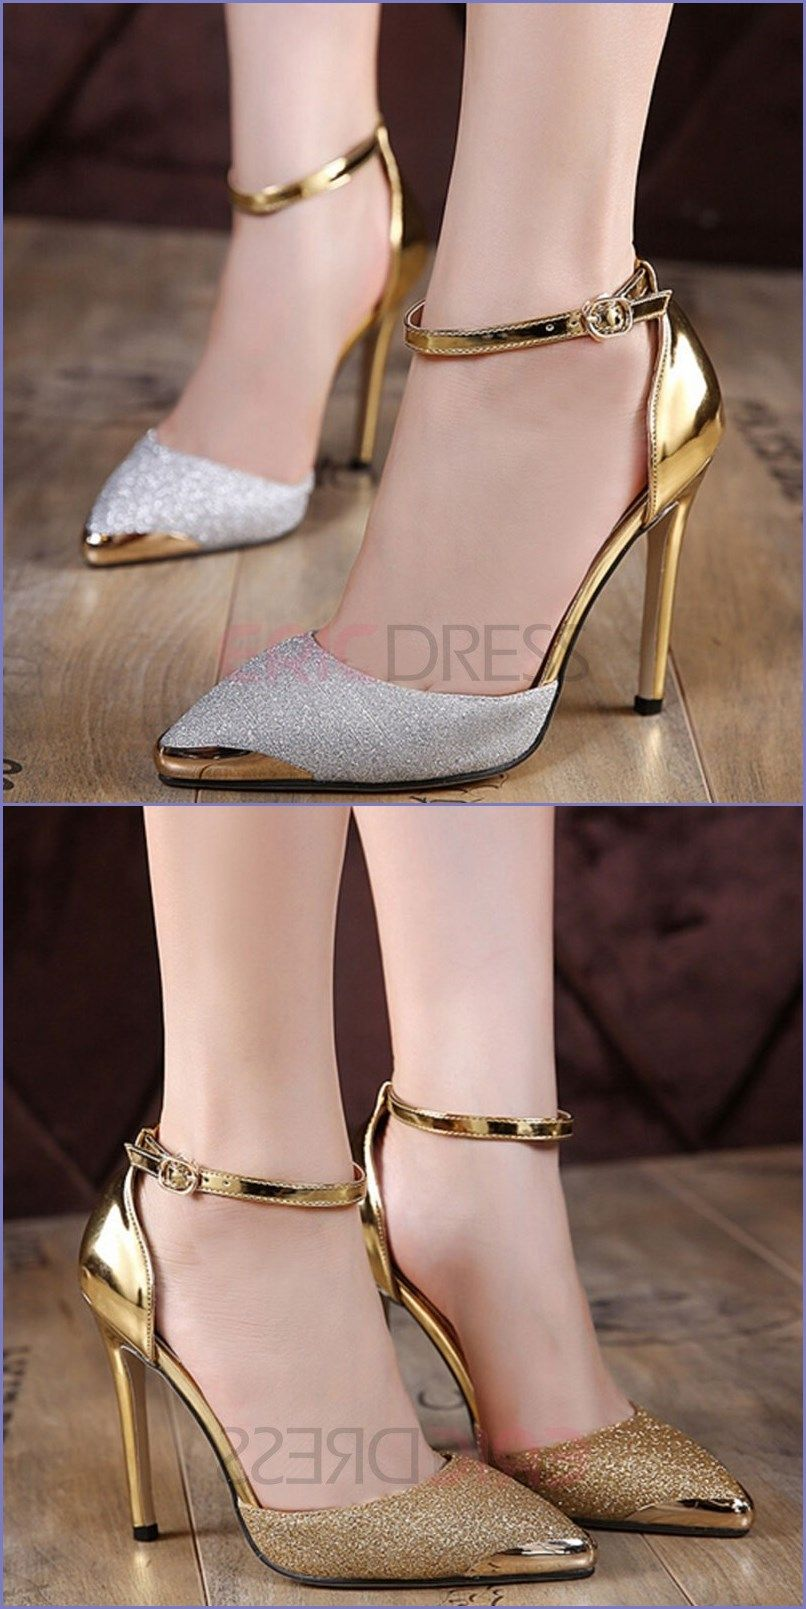 953f74c3ab21 Ericdress Luxurious Metal sequins Point Toe Pumps